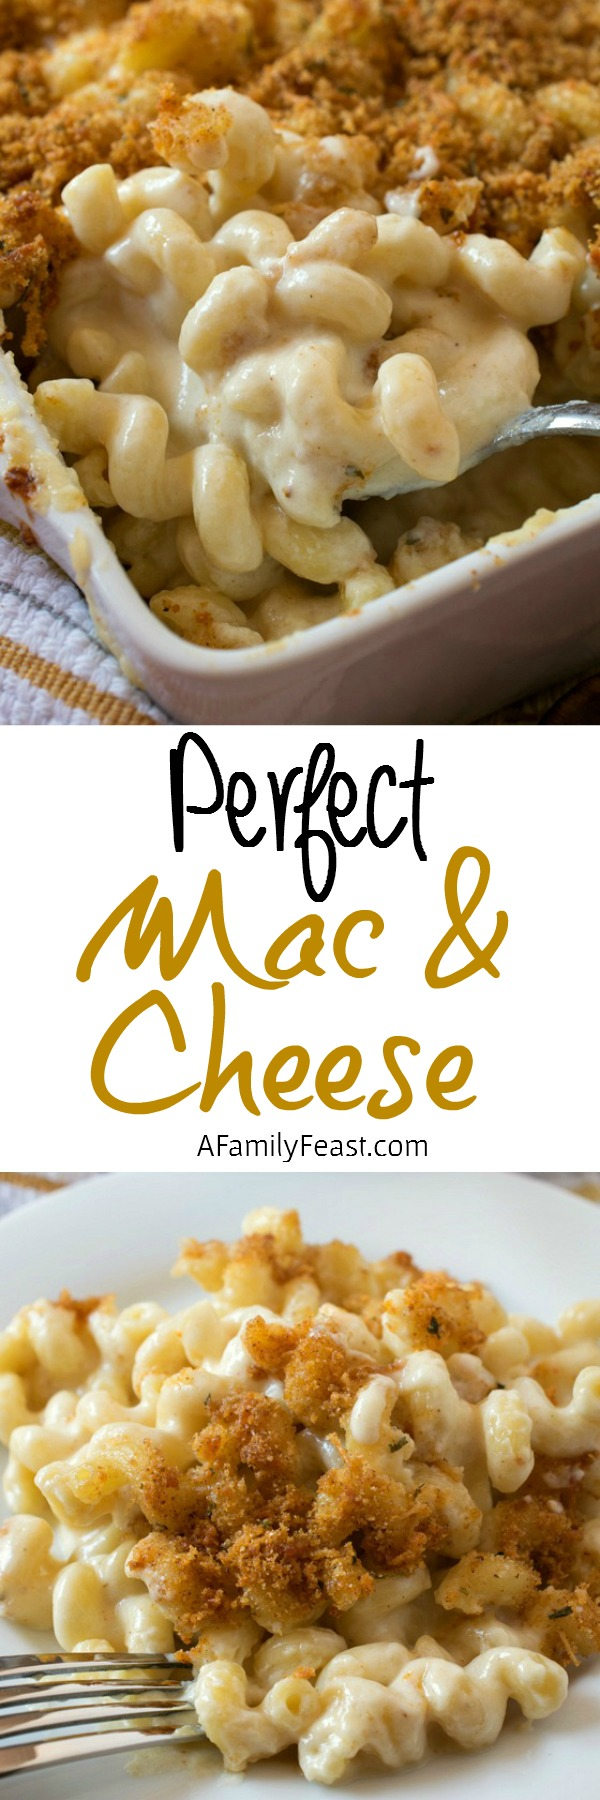 We share all of the secrets to making Perfect Macaroni and Cheese!  Easy and delicious!